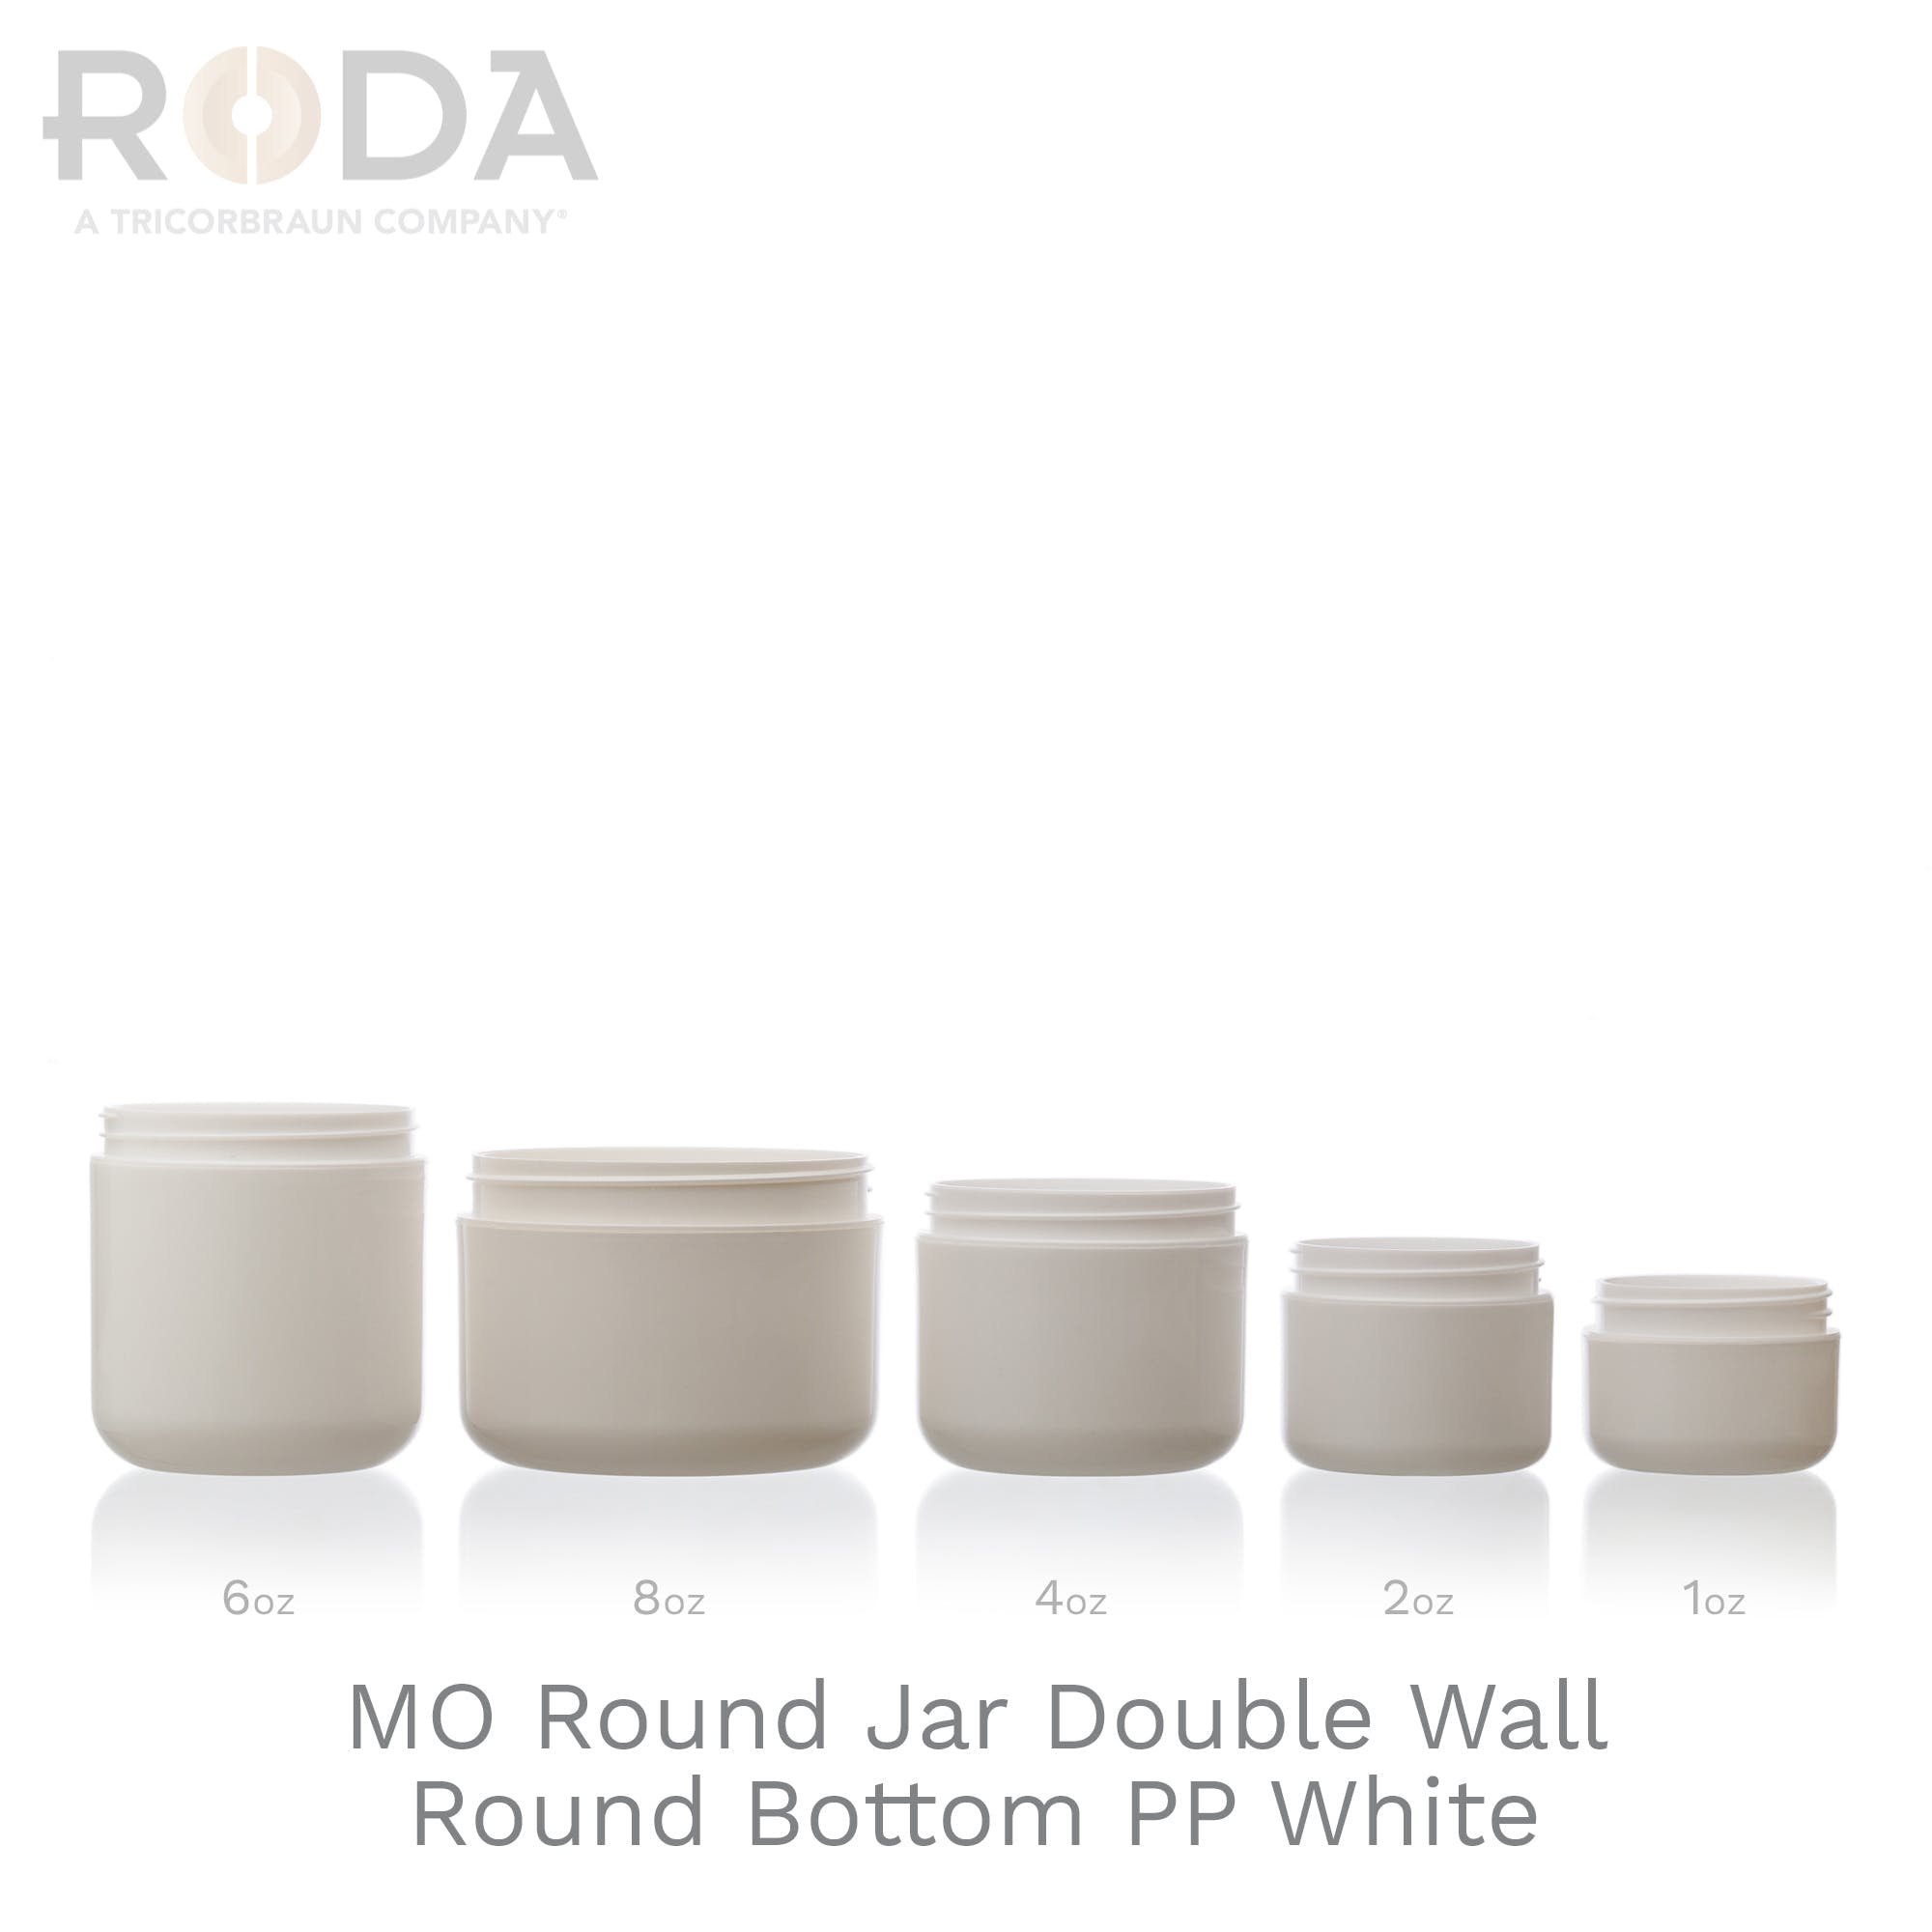 MO Round Jar Double Wall Round Bottom PP White